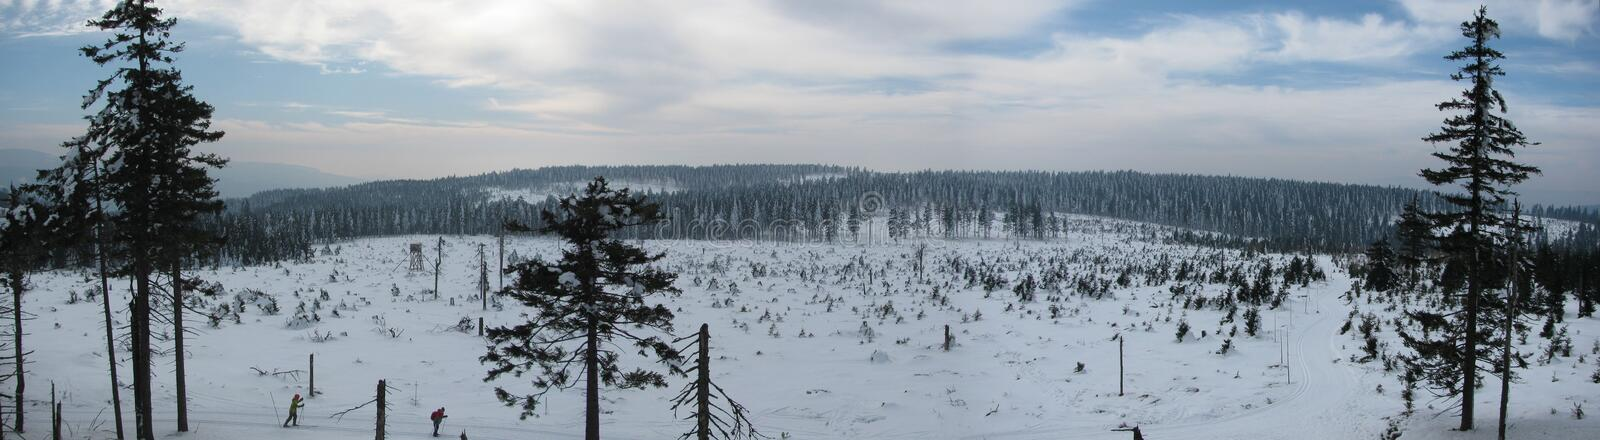 Winter landscape along the tracks for cross-country skiing stock photography